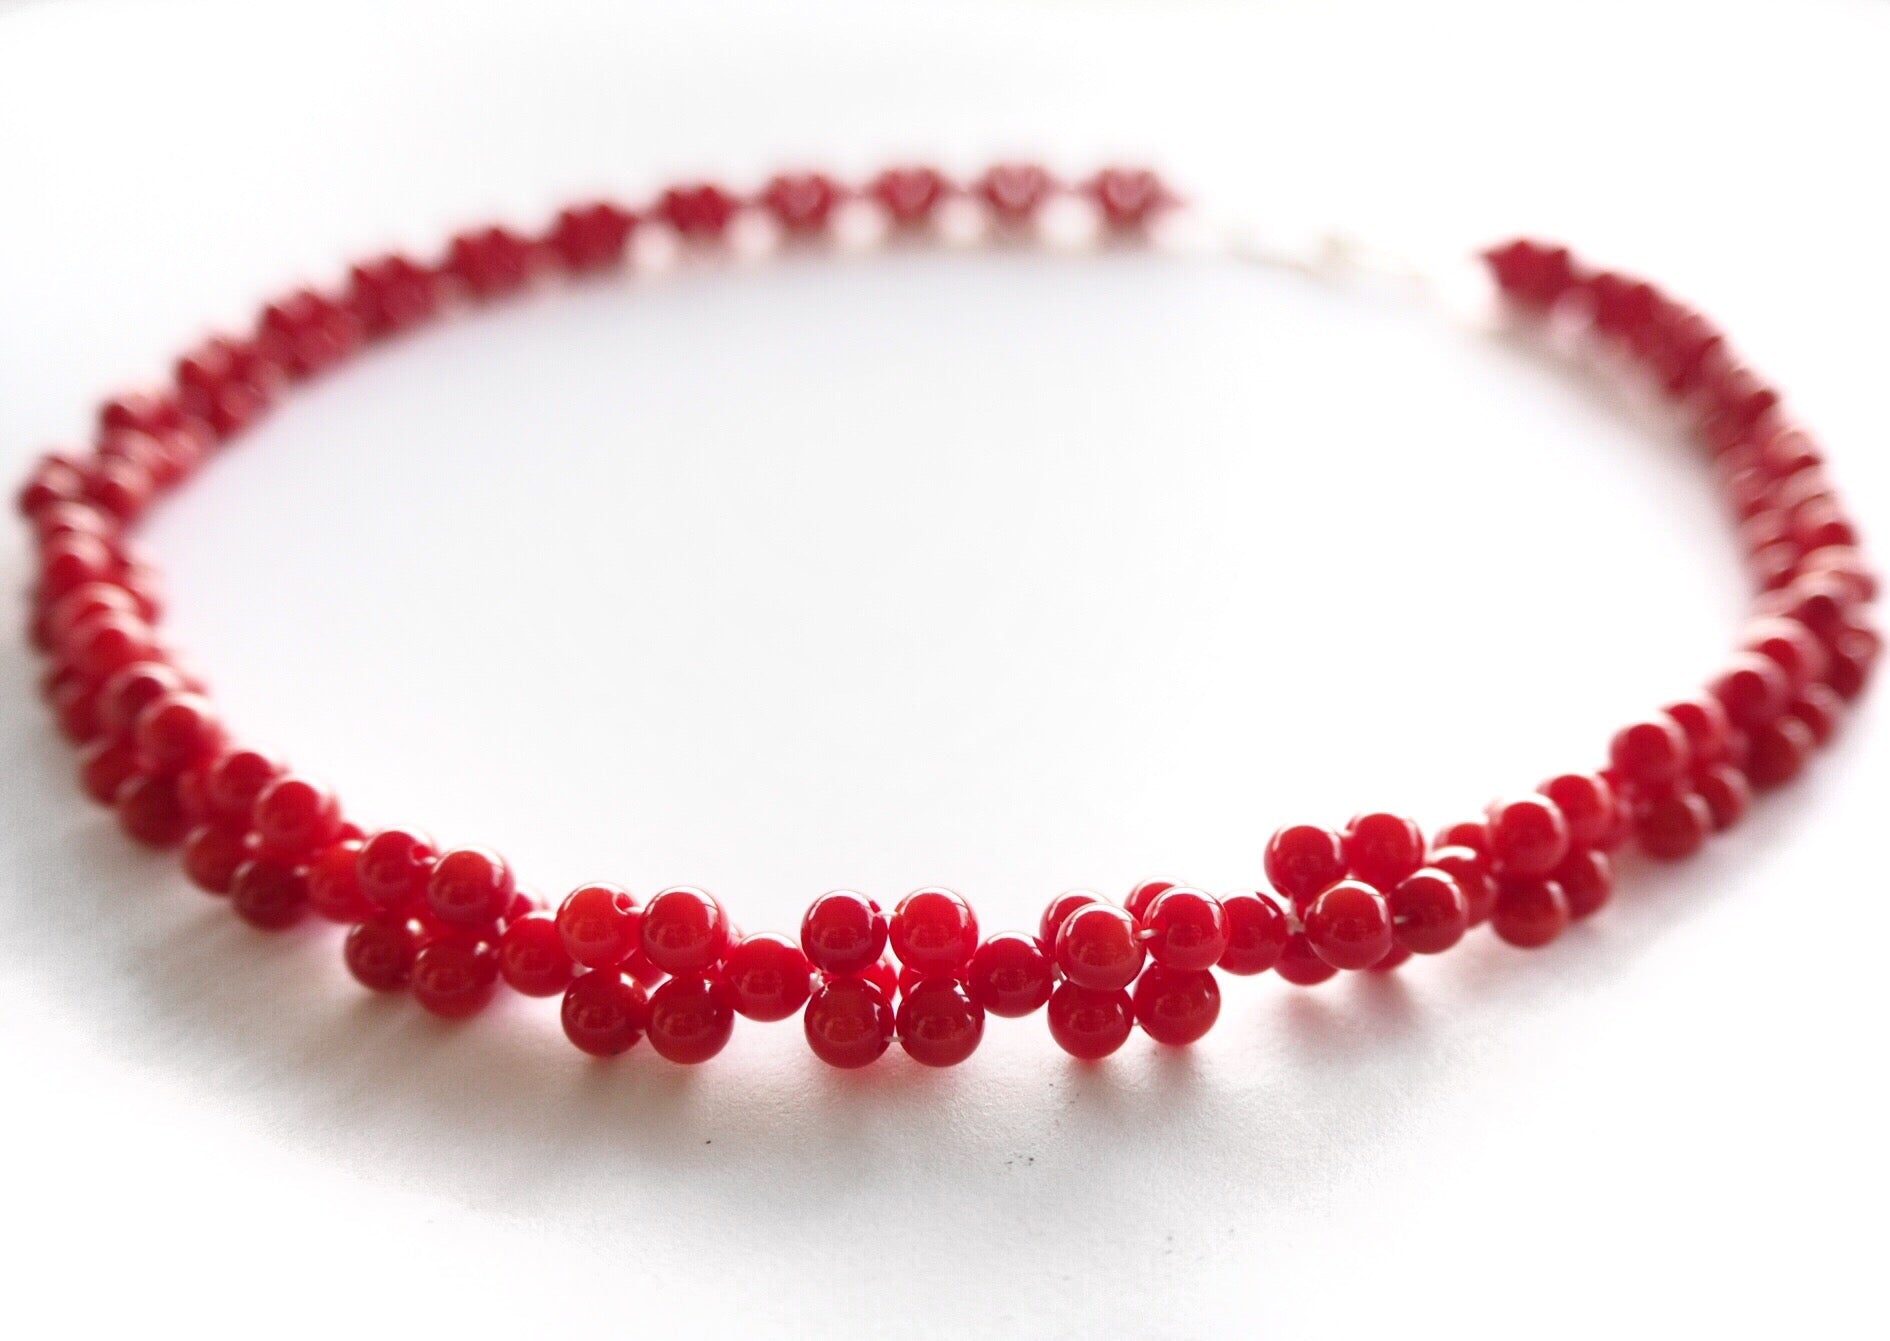 Coral - Red crossed coral necklace with sterling silver hook clasp